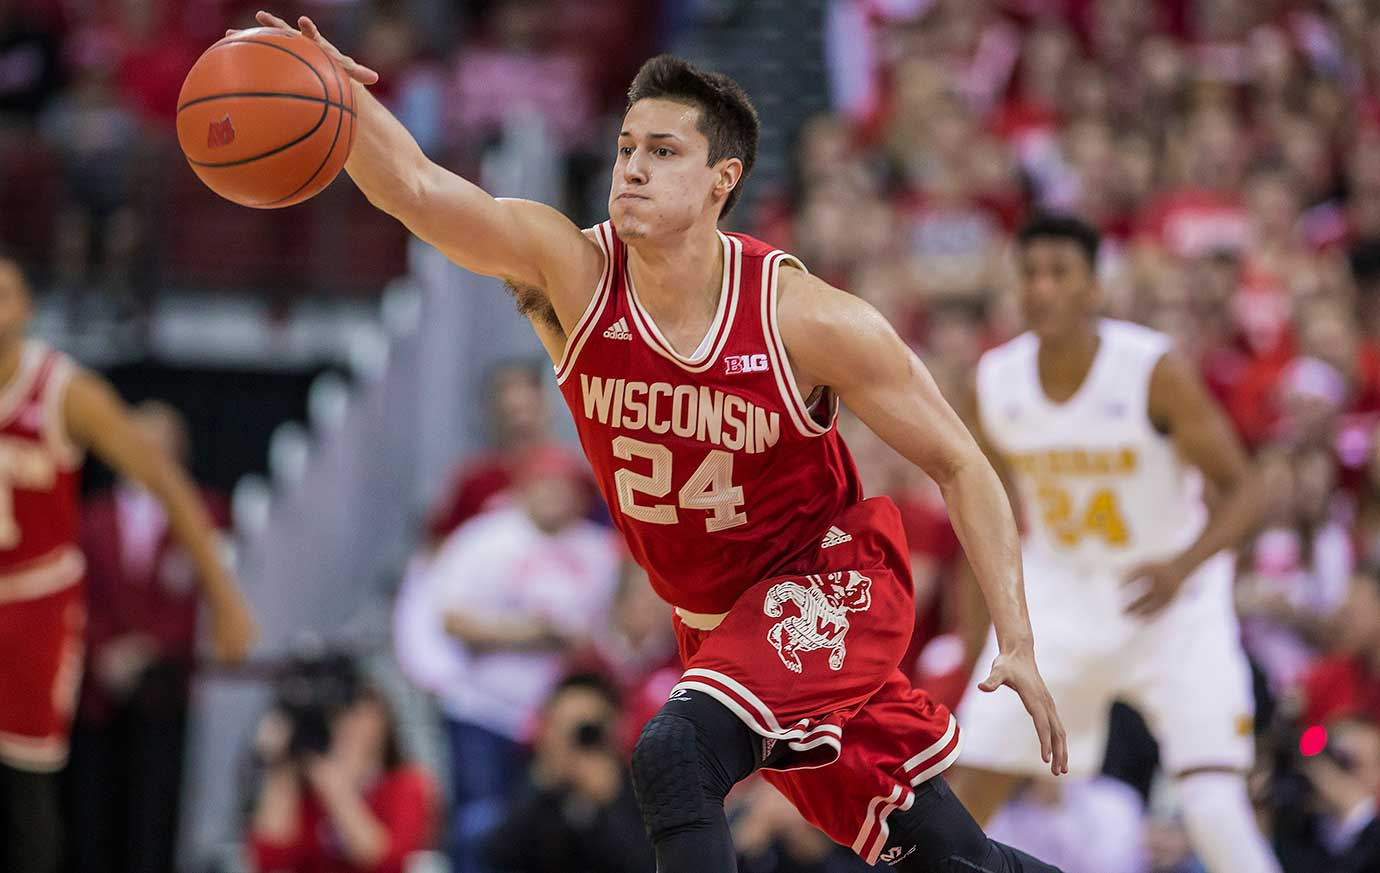 Wisconsin guard Bronson Koenig makes a play on a loose ball during a 68-57 win over Michigan.